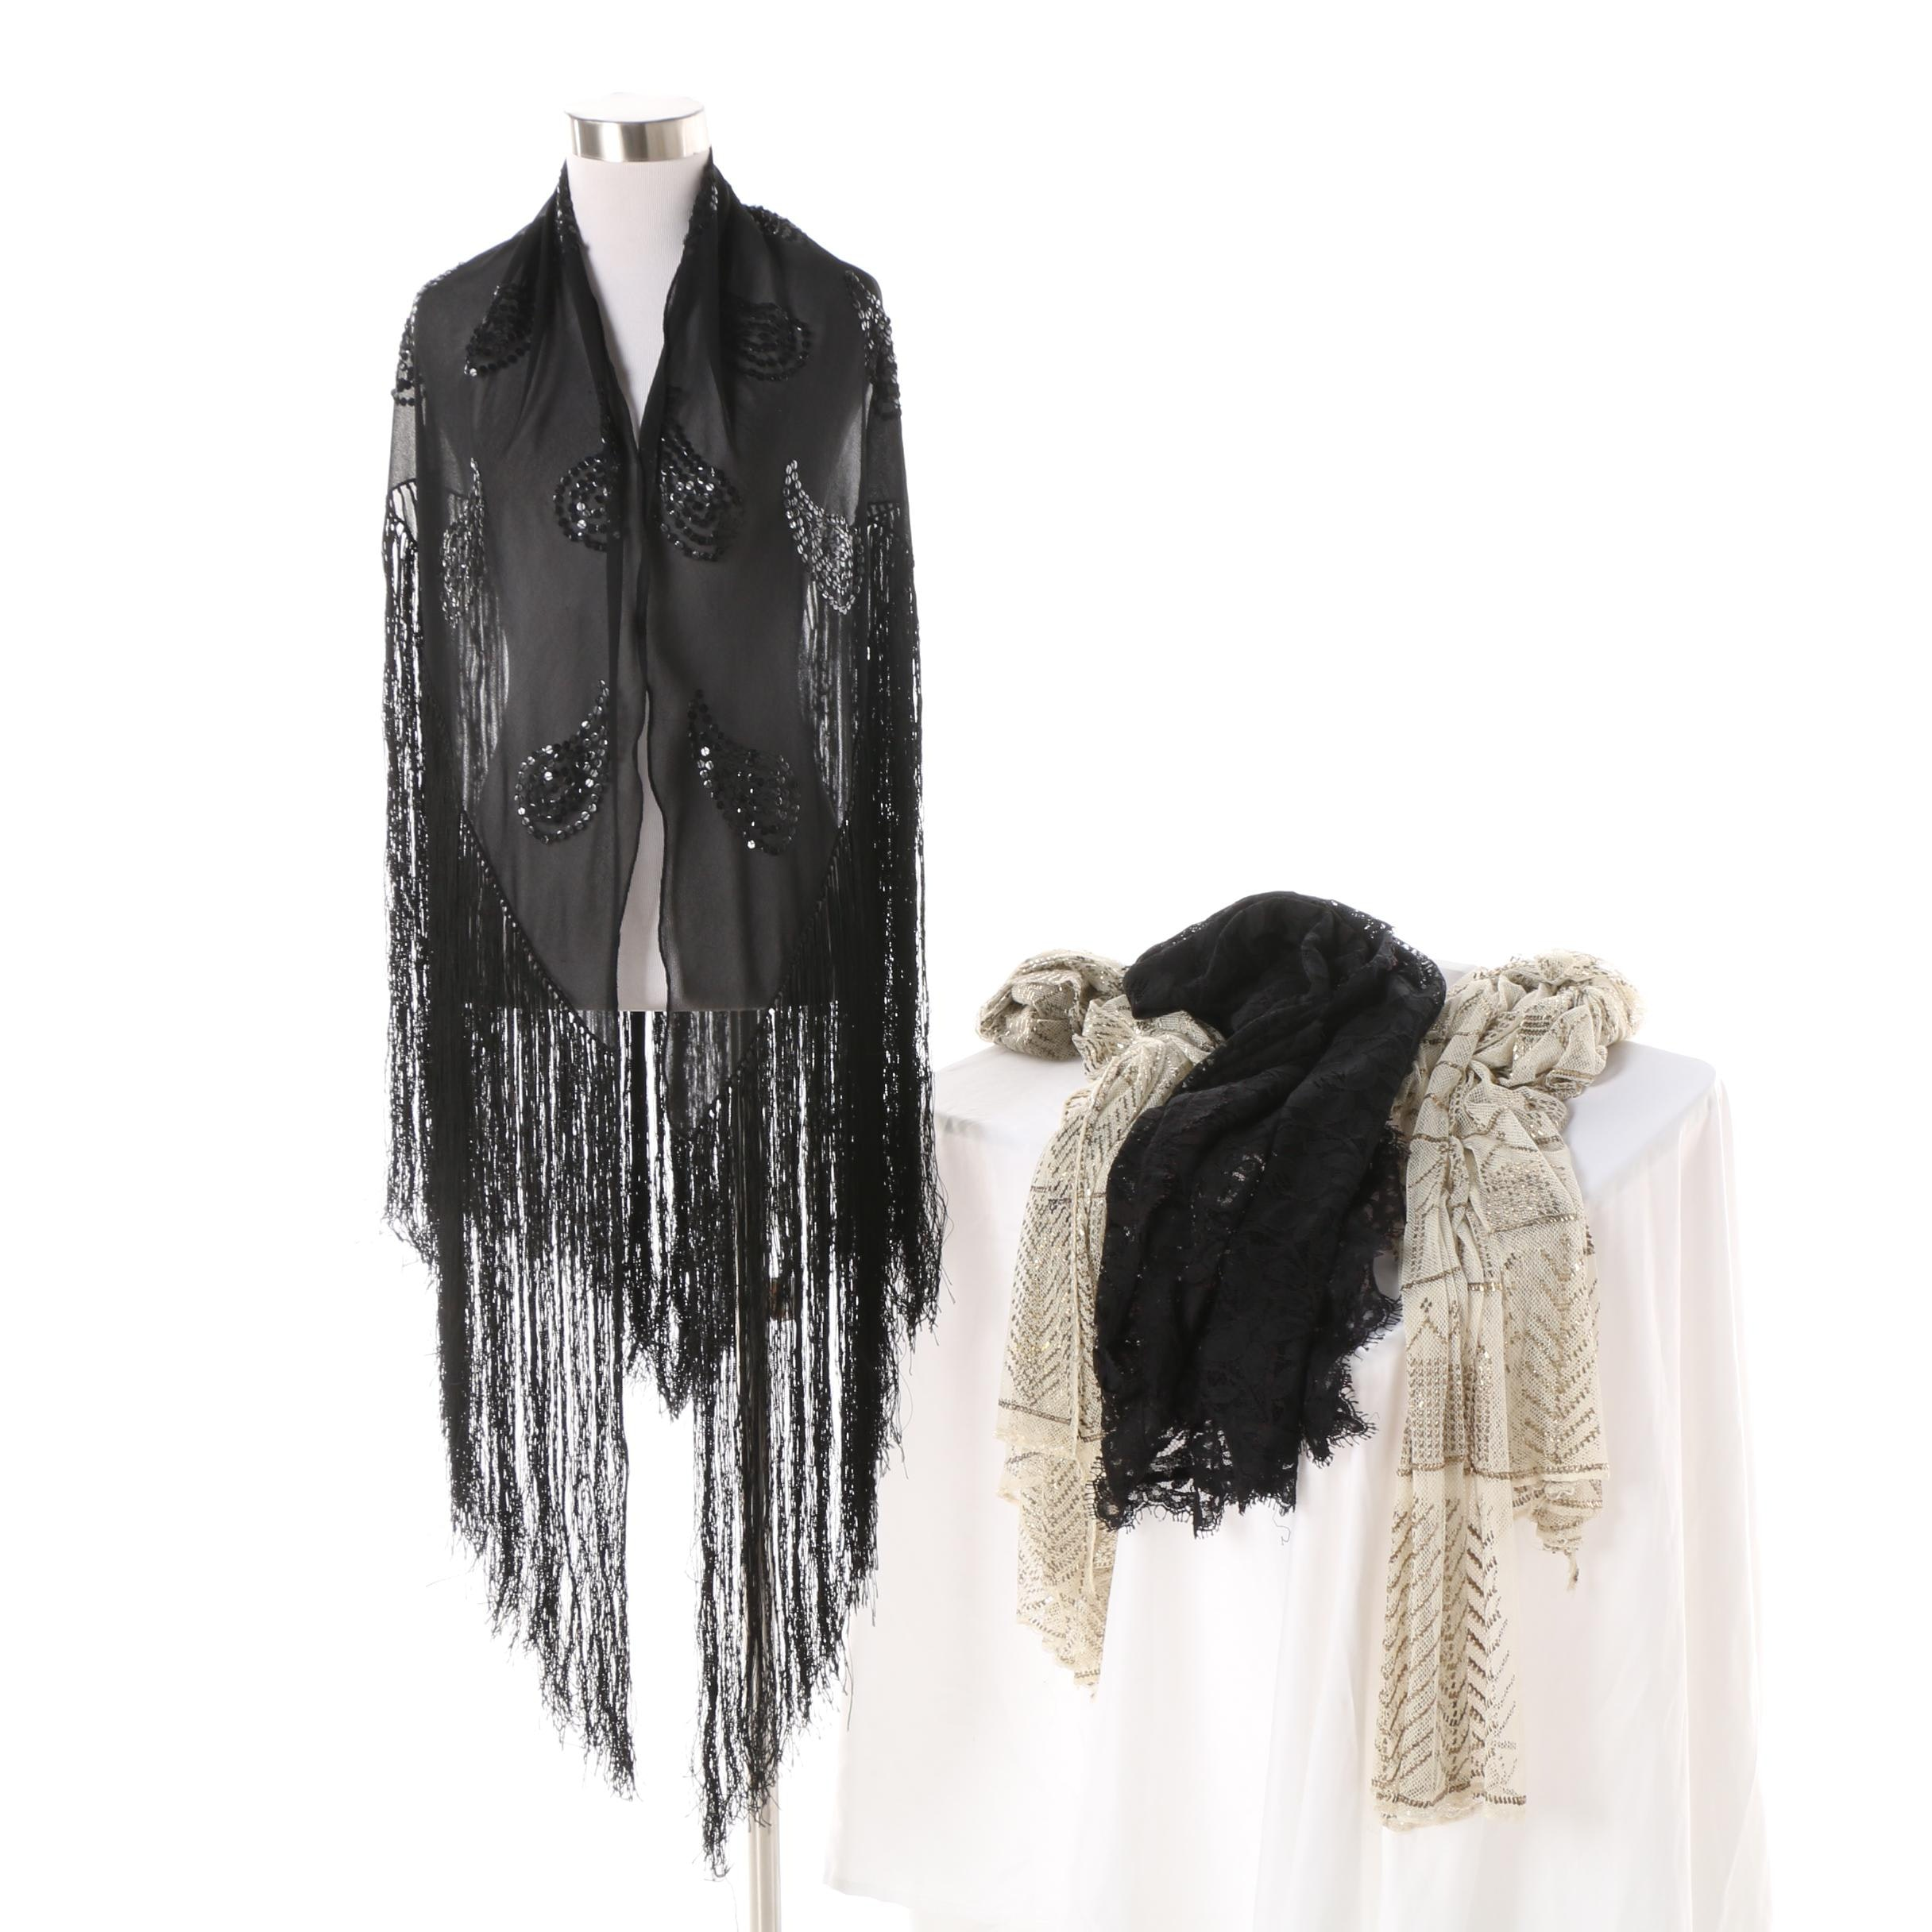 Women's Sequined Black Fringed Shawl and Fabric Remnants